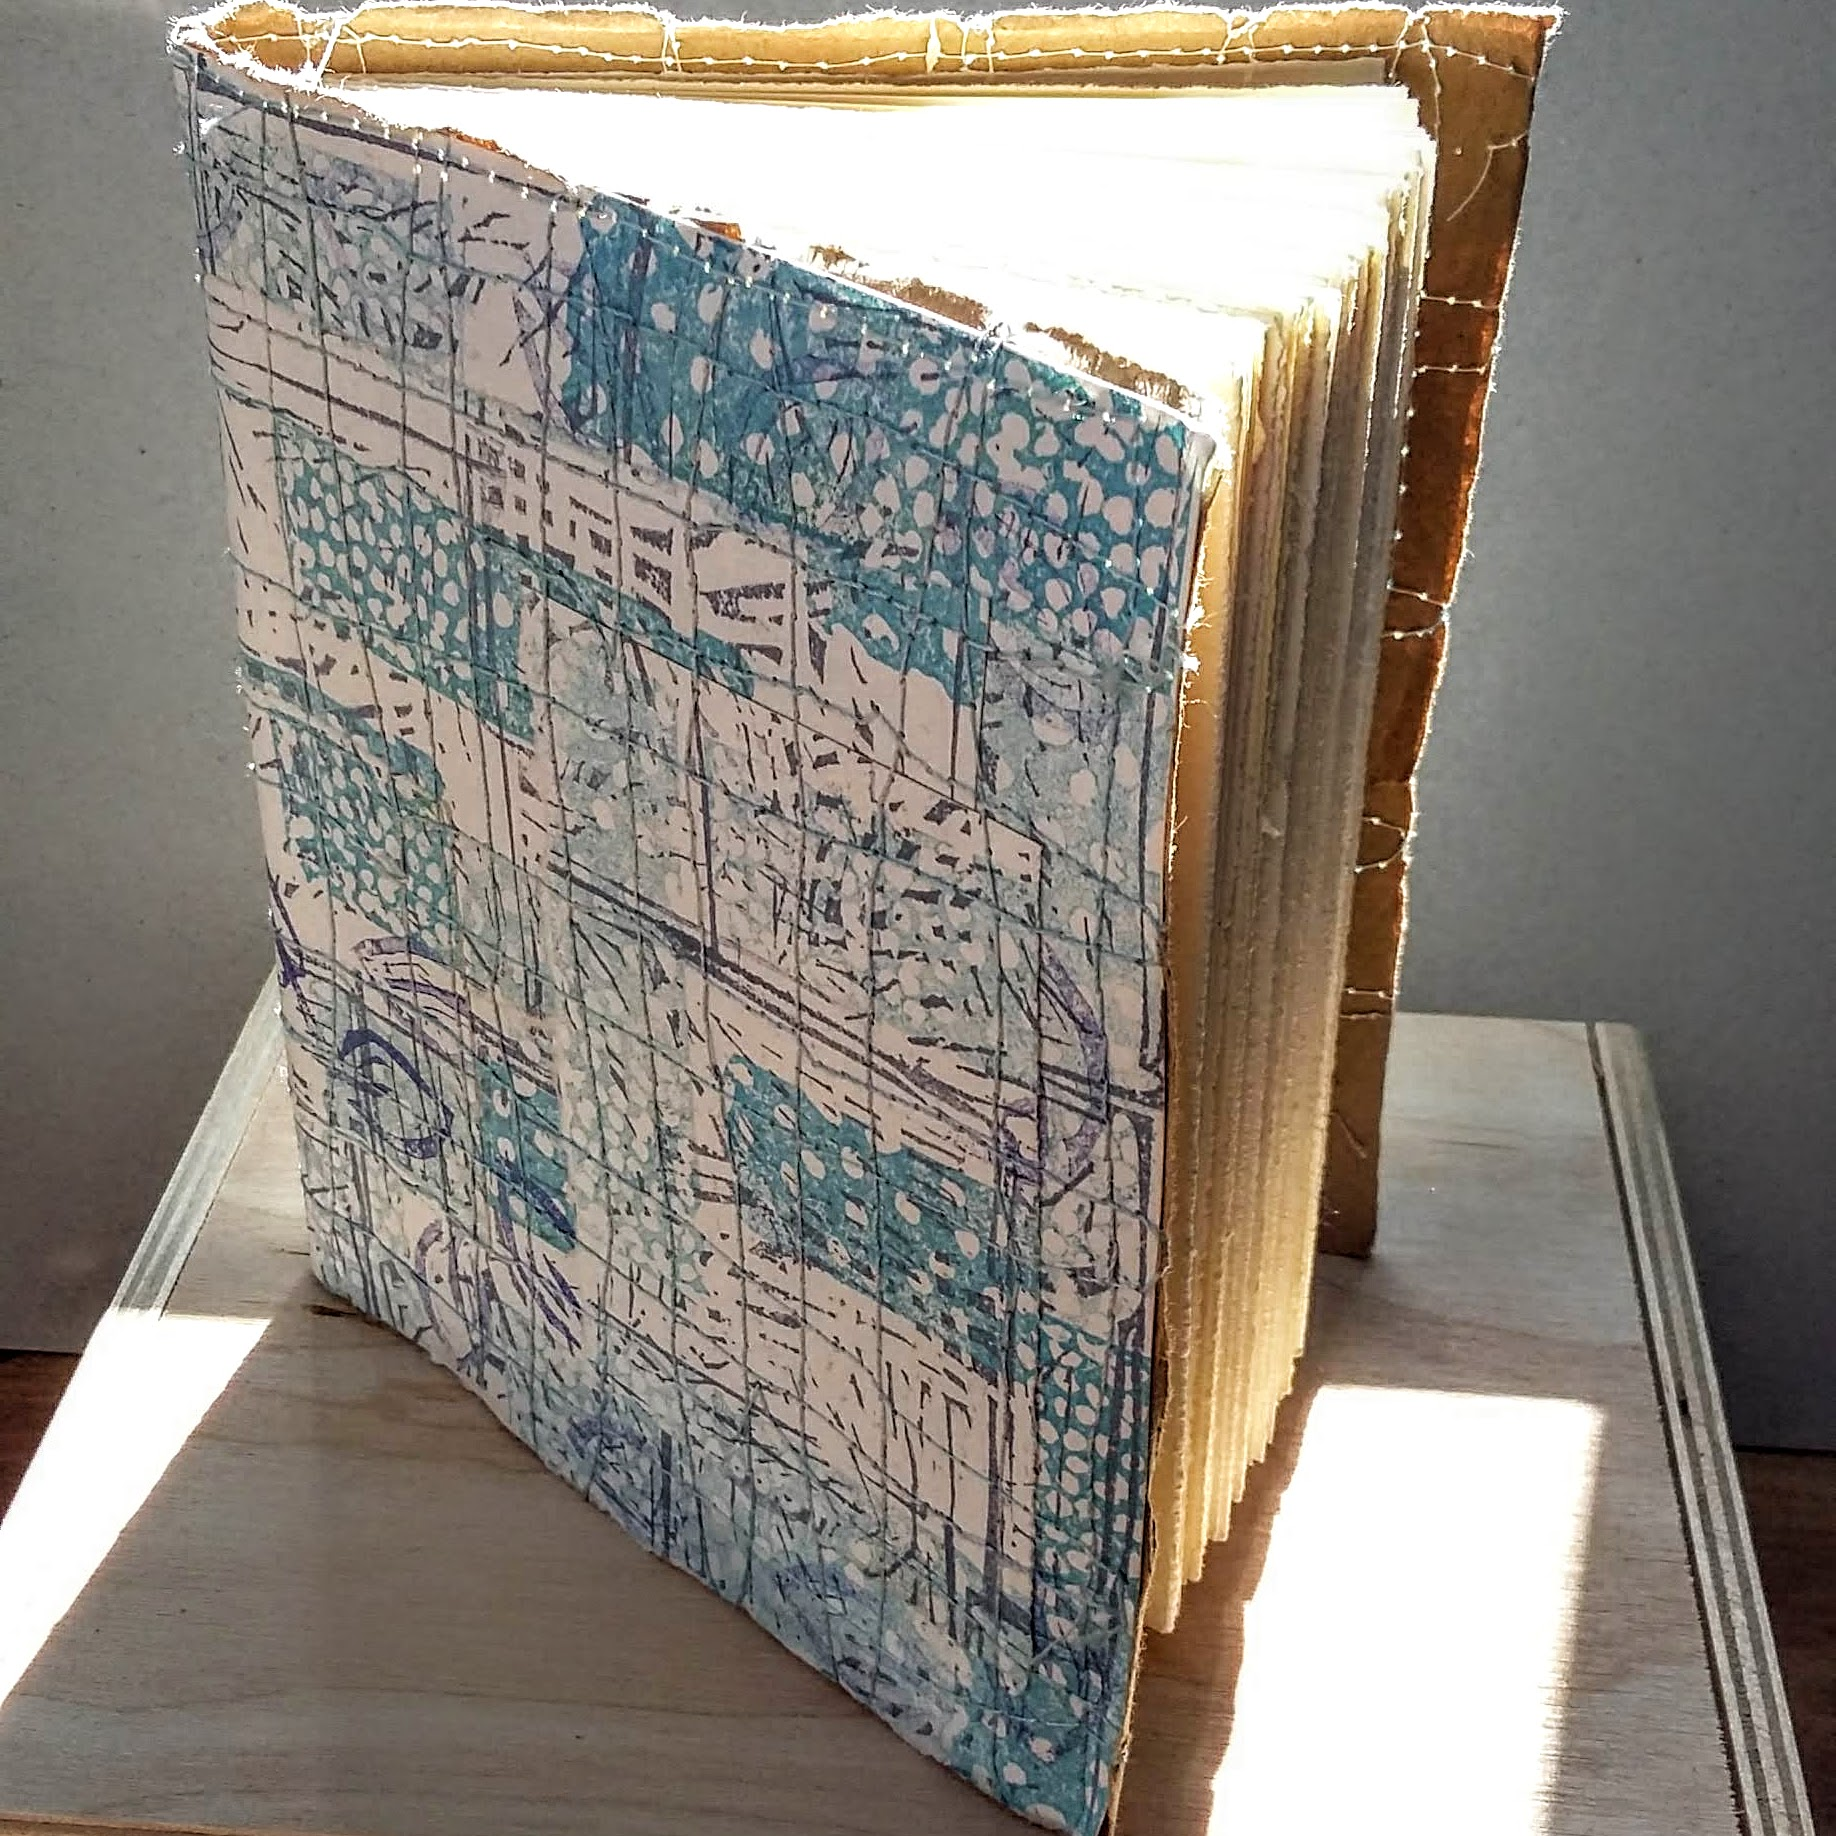 Printed blue book with machine embroidery. 12 x 14 cm. 124 sides, 62 pages. £30 plus p&p